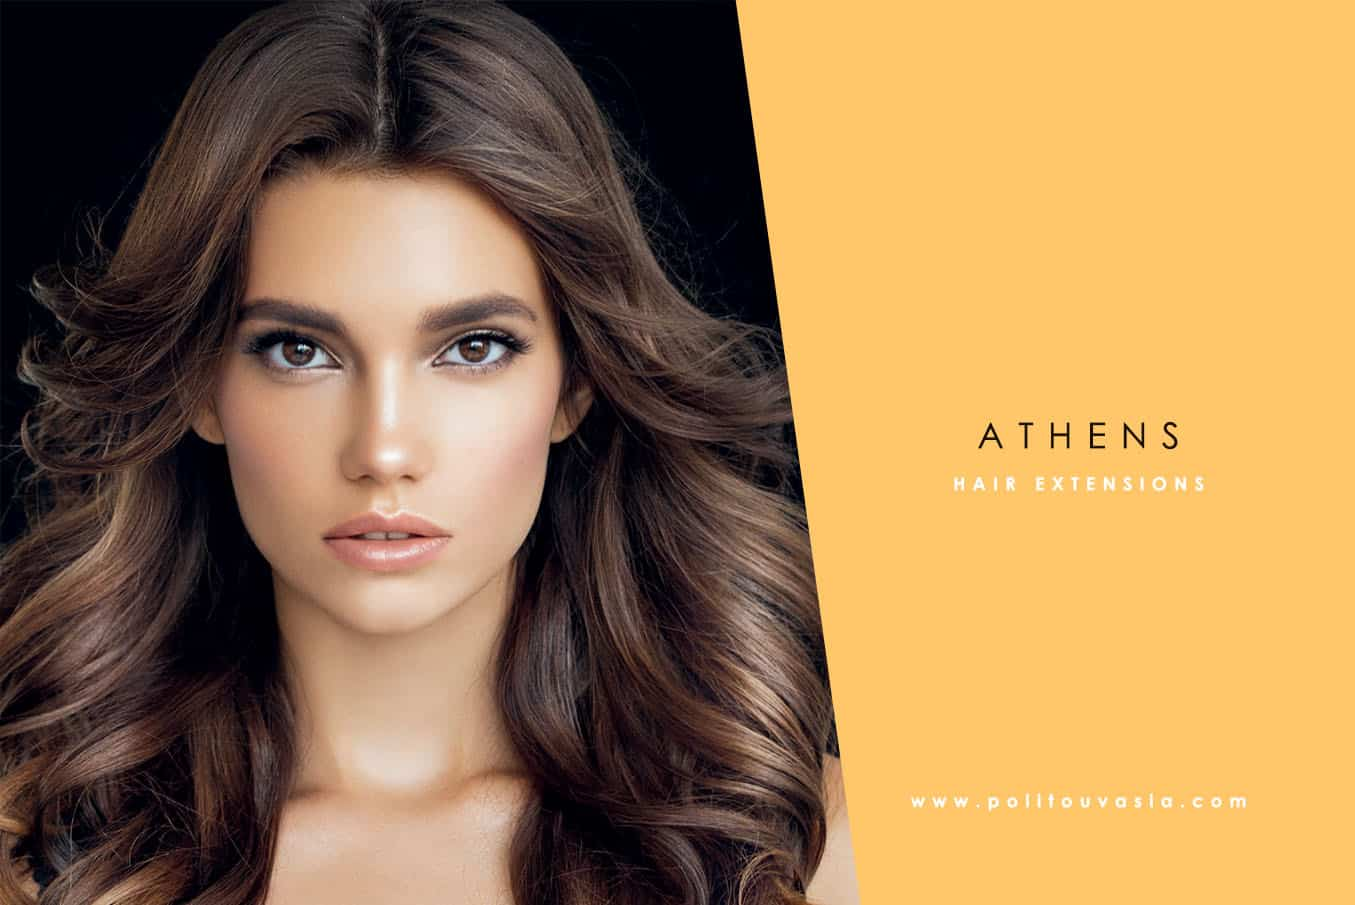 hair extensions athens hair extensions Αθήνα